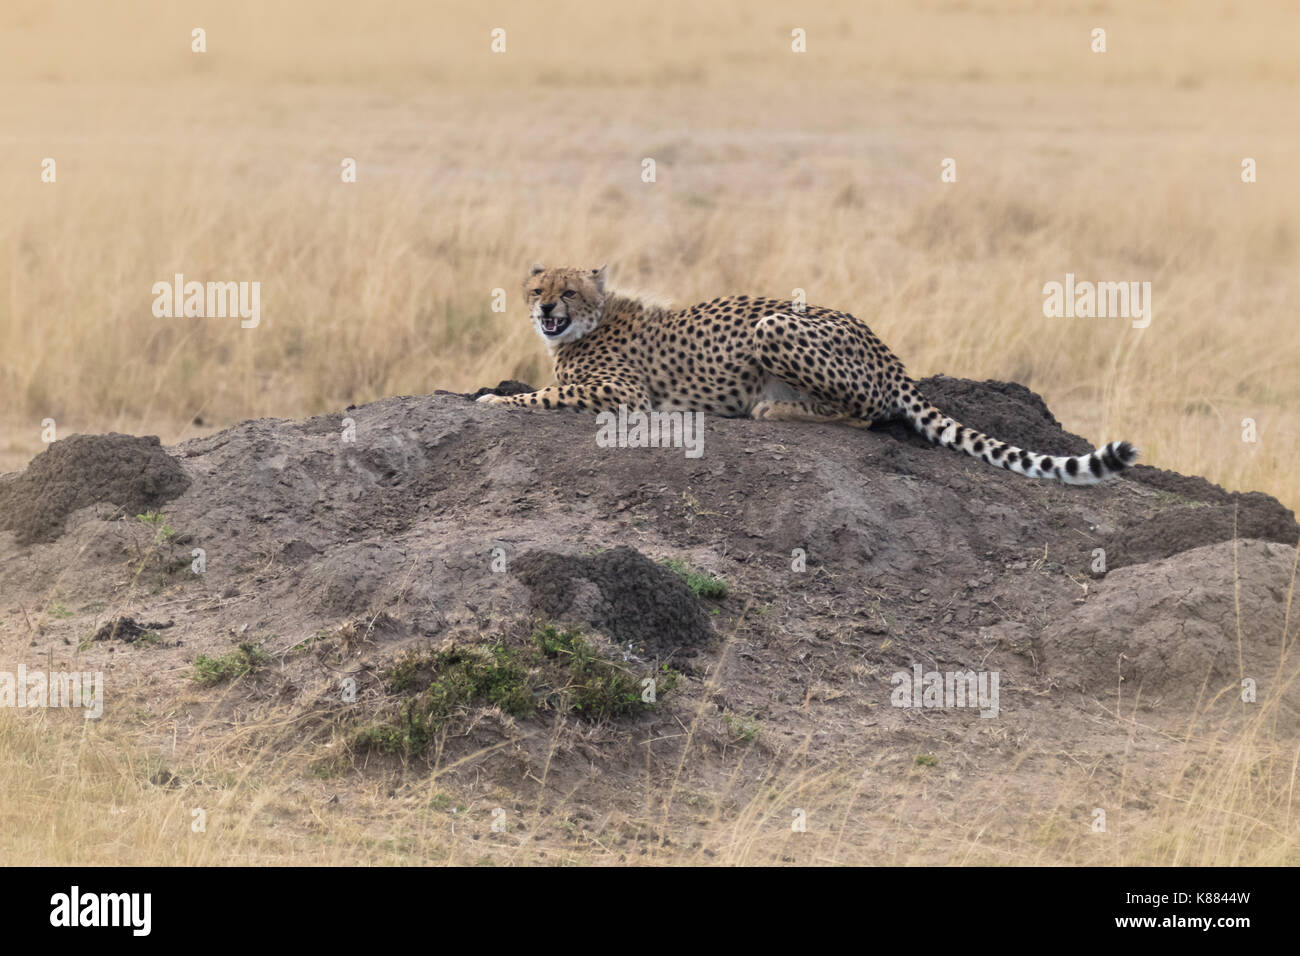 A young cheetah snarls at the camera as she looks for prey from an elevated position on the Masai Mara, Kenya - Stock Image